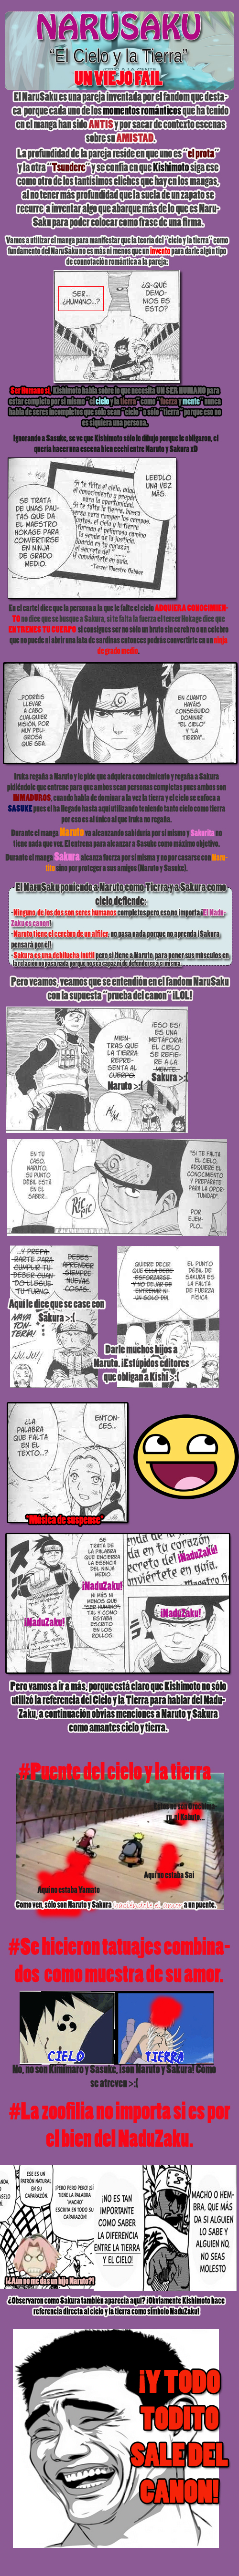 The Anti NaruSaku FC Narusaku_cielo_y_tierra__fail_by_auzhora-d6xwms9